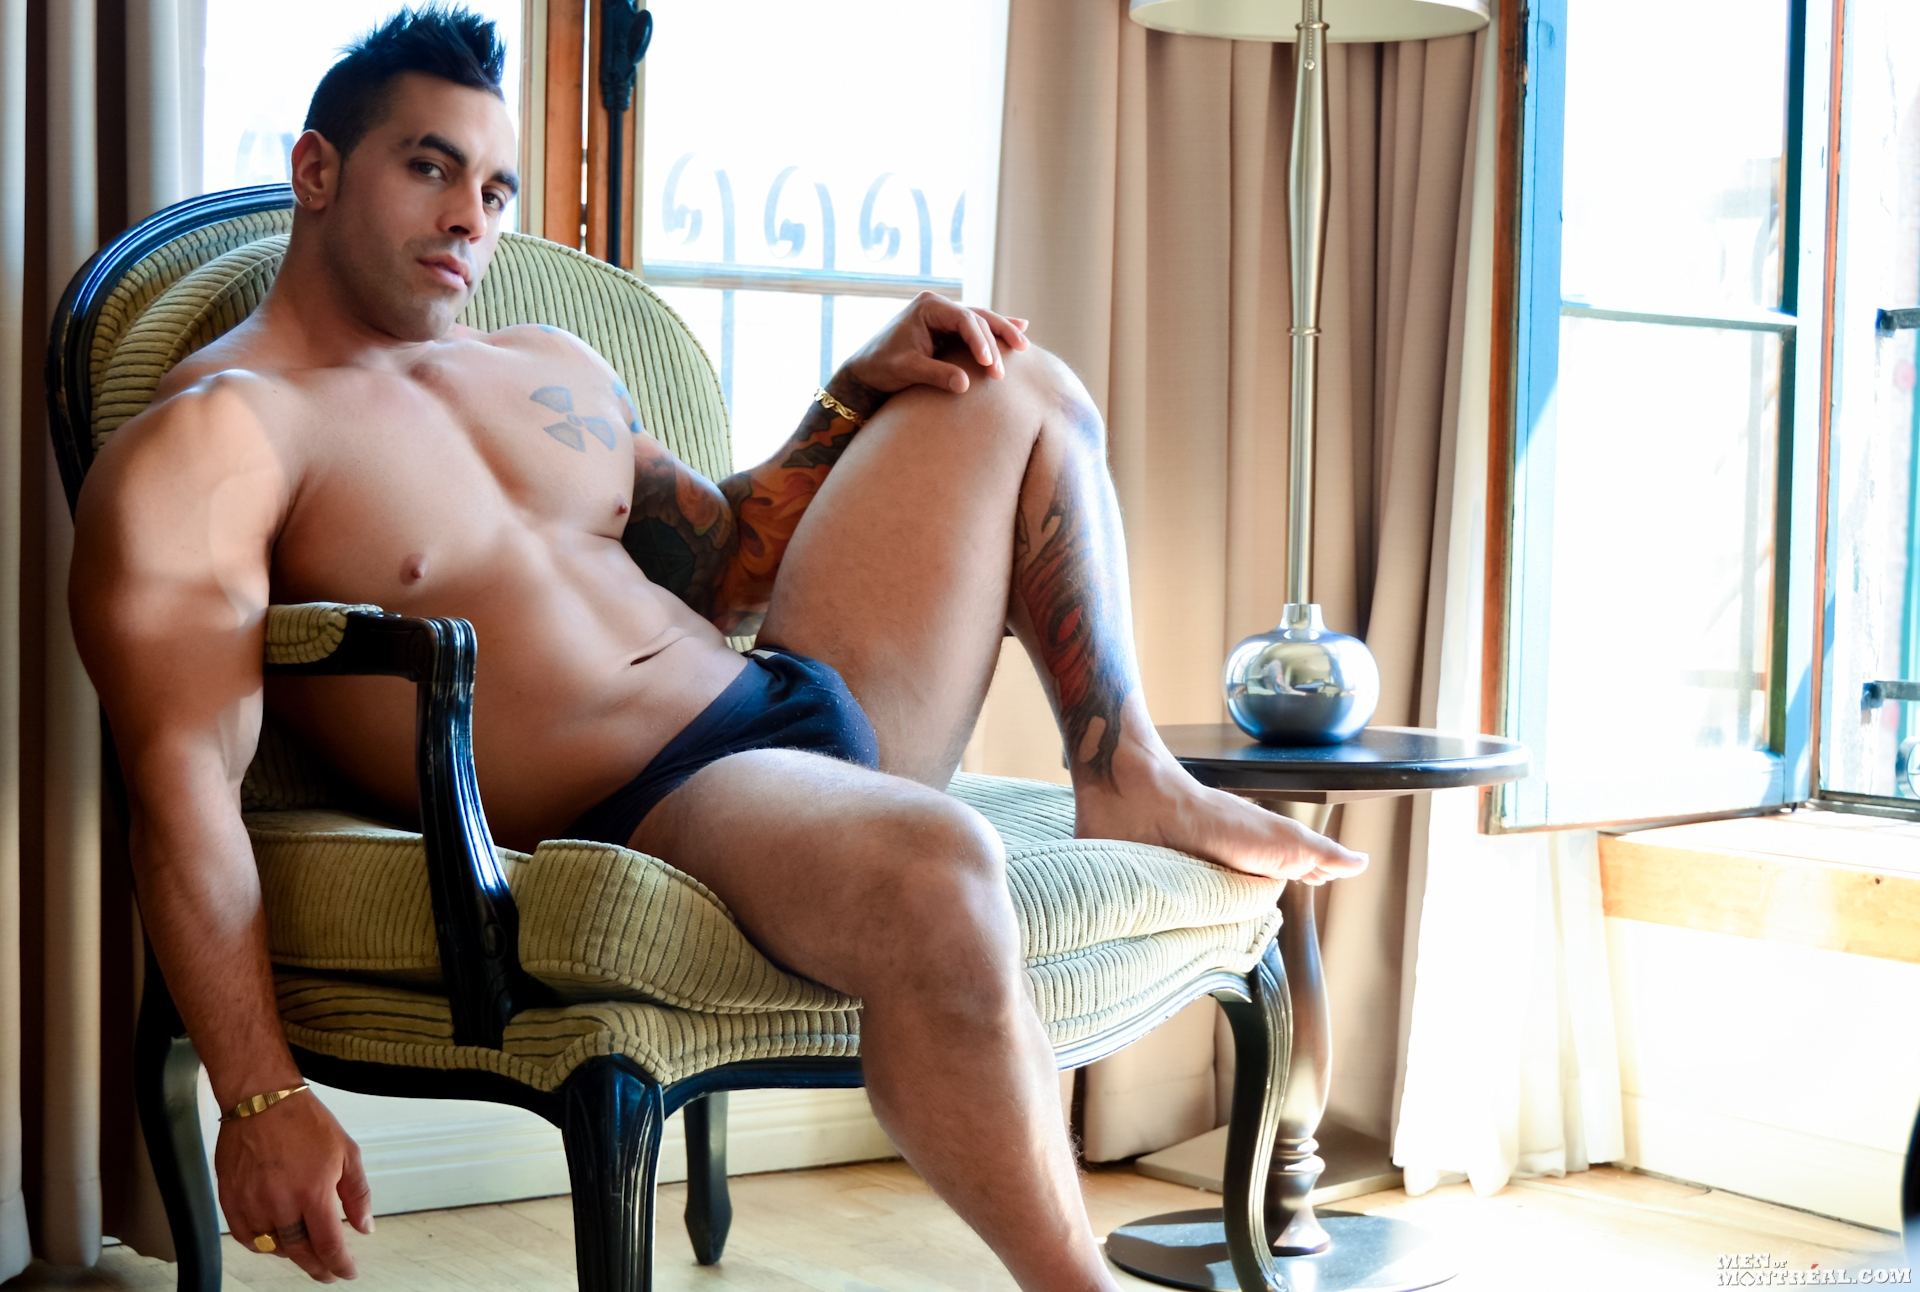 Emilio Calabria gay hot daddy dude men porn Men of Montreal